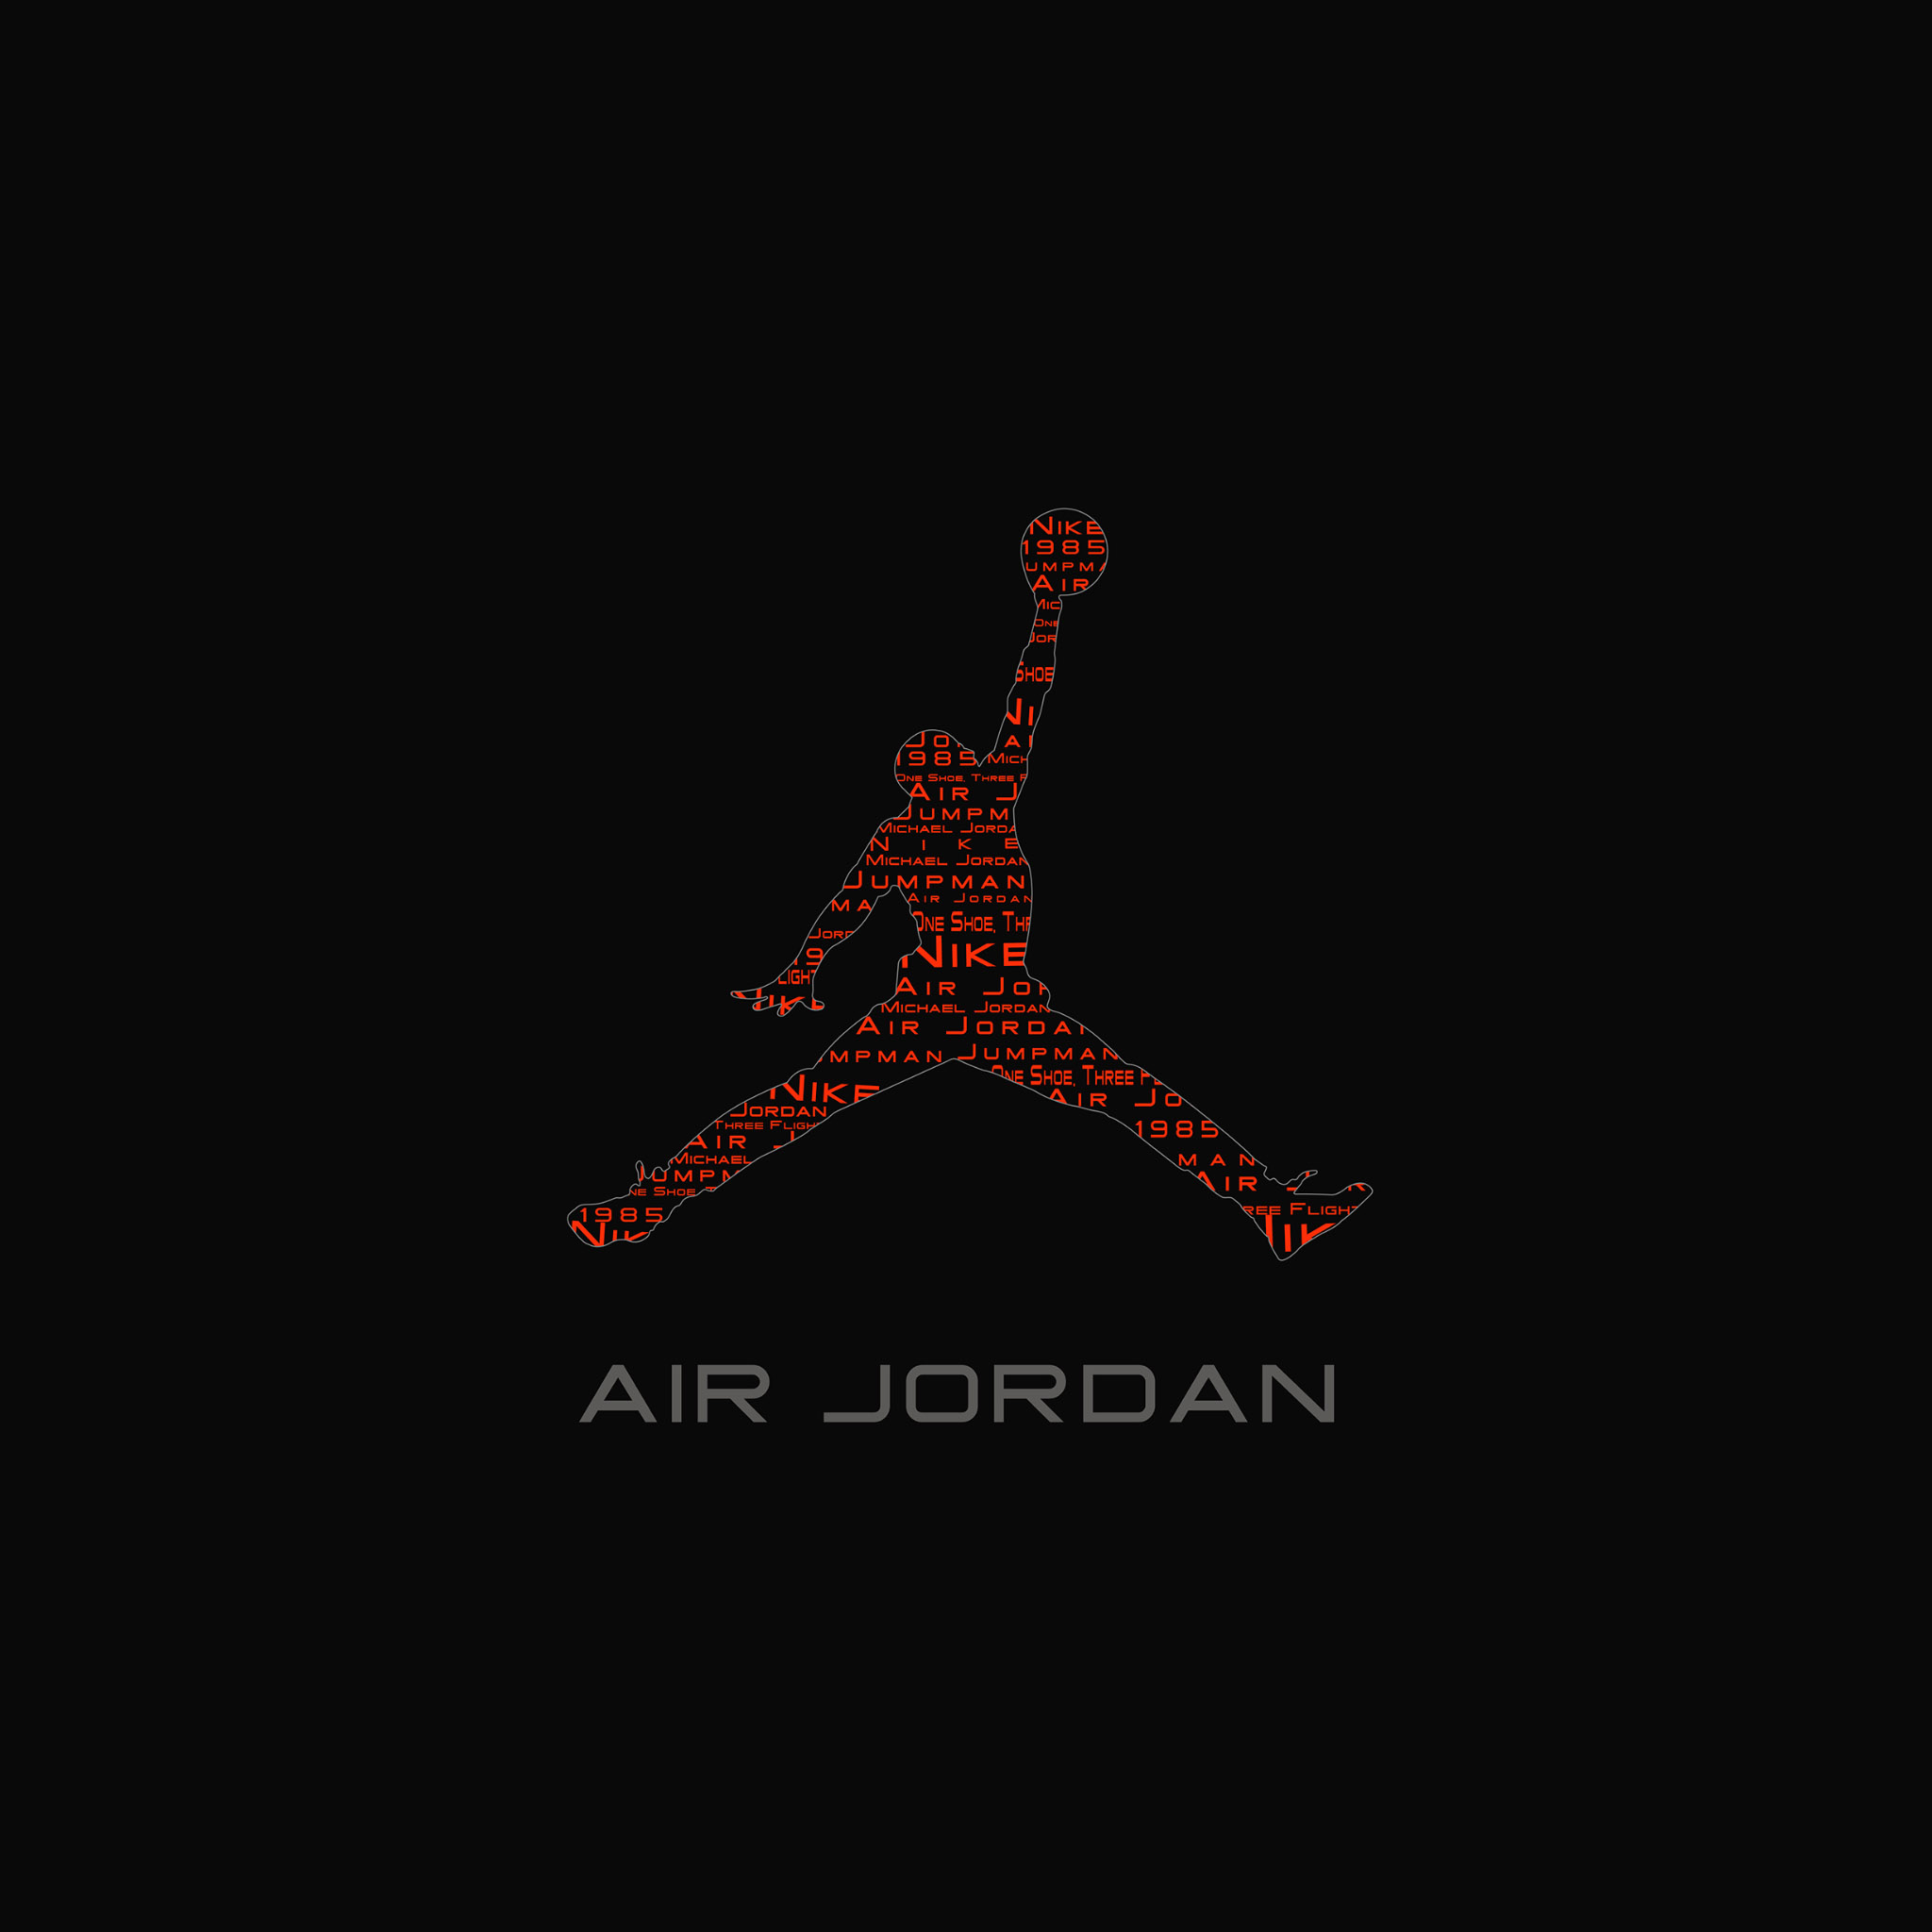 Wallpaper iphone jordan - Freeios7 Air Jordan Logo Parallax Hd Iphone Ipad Wallpaper